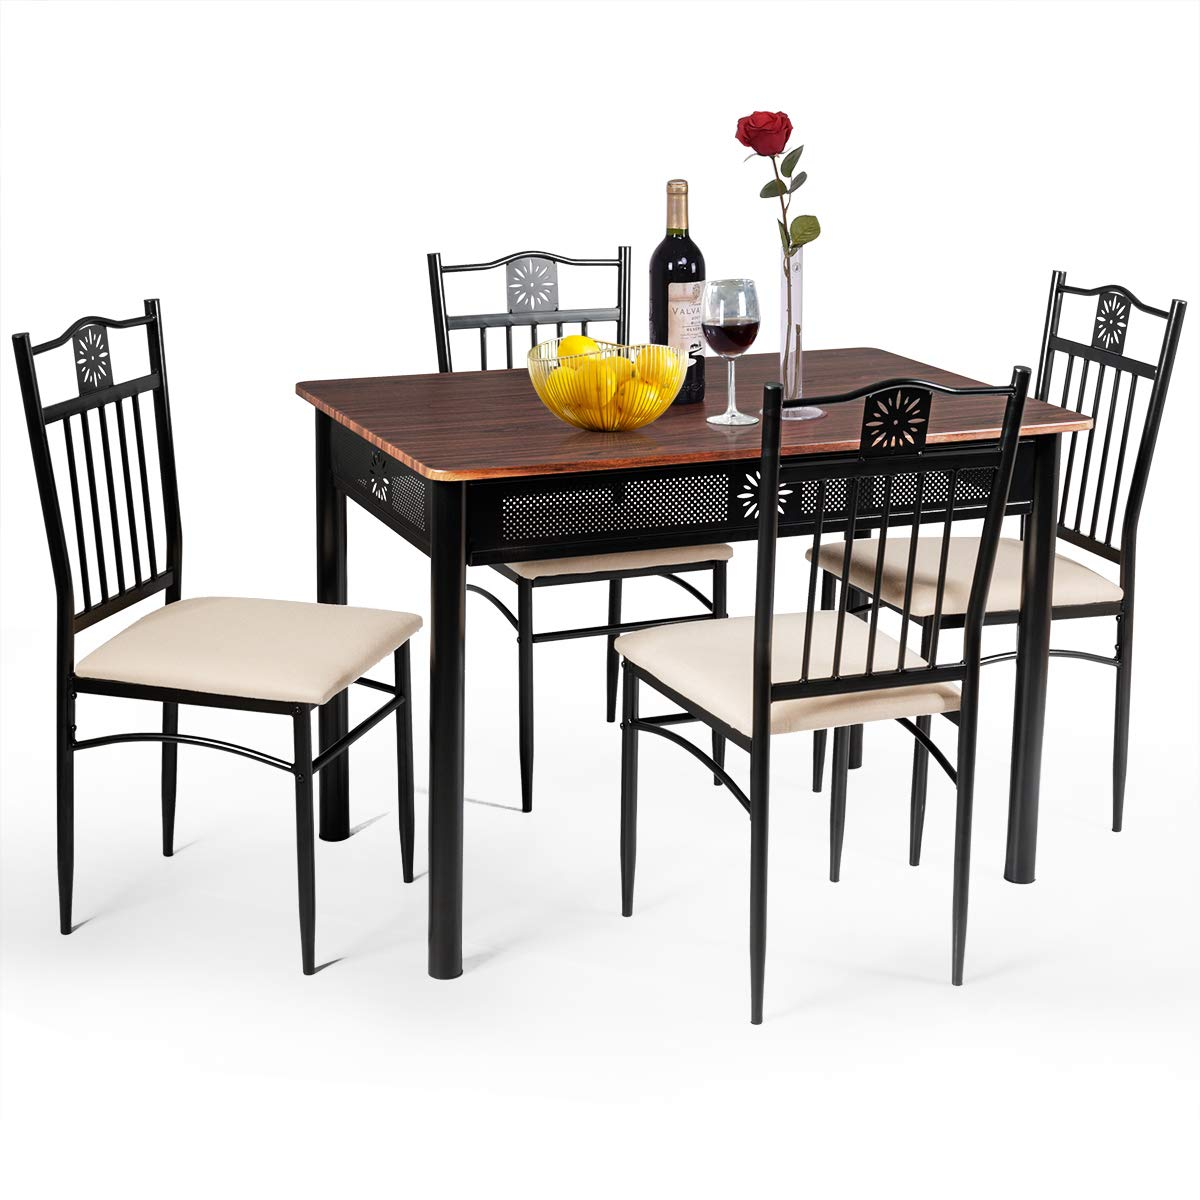 Tangkula 5 Pieces Dining Table and Chairs Set, Vintage Retro Wood Top Metal Frame Padded Seat Dining Table Set Home Kitchen Dining Room Furniture (Brown) by Tangkula